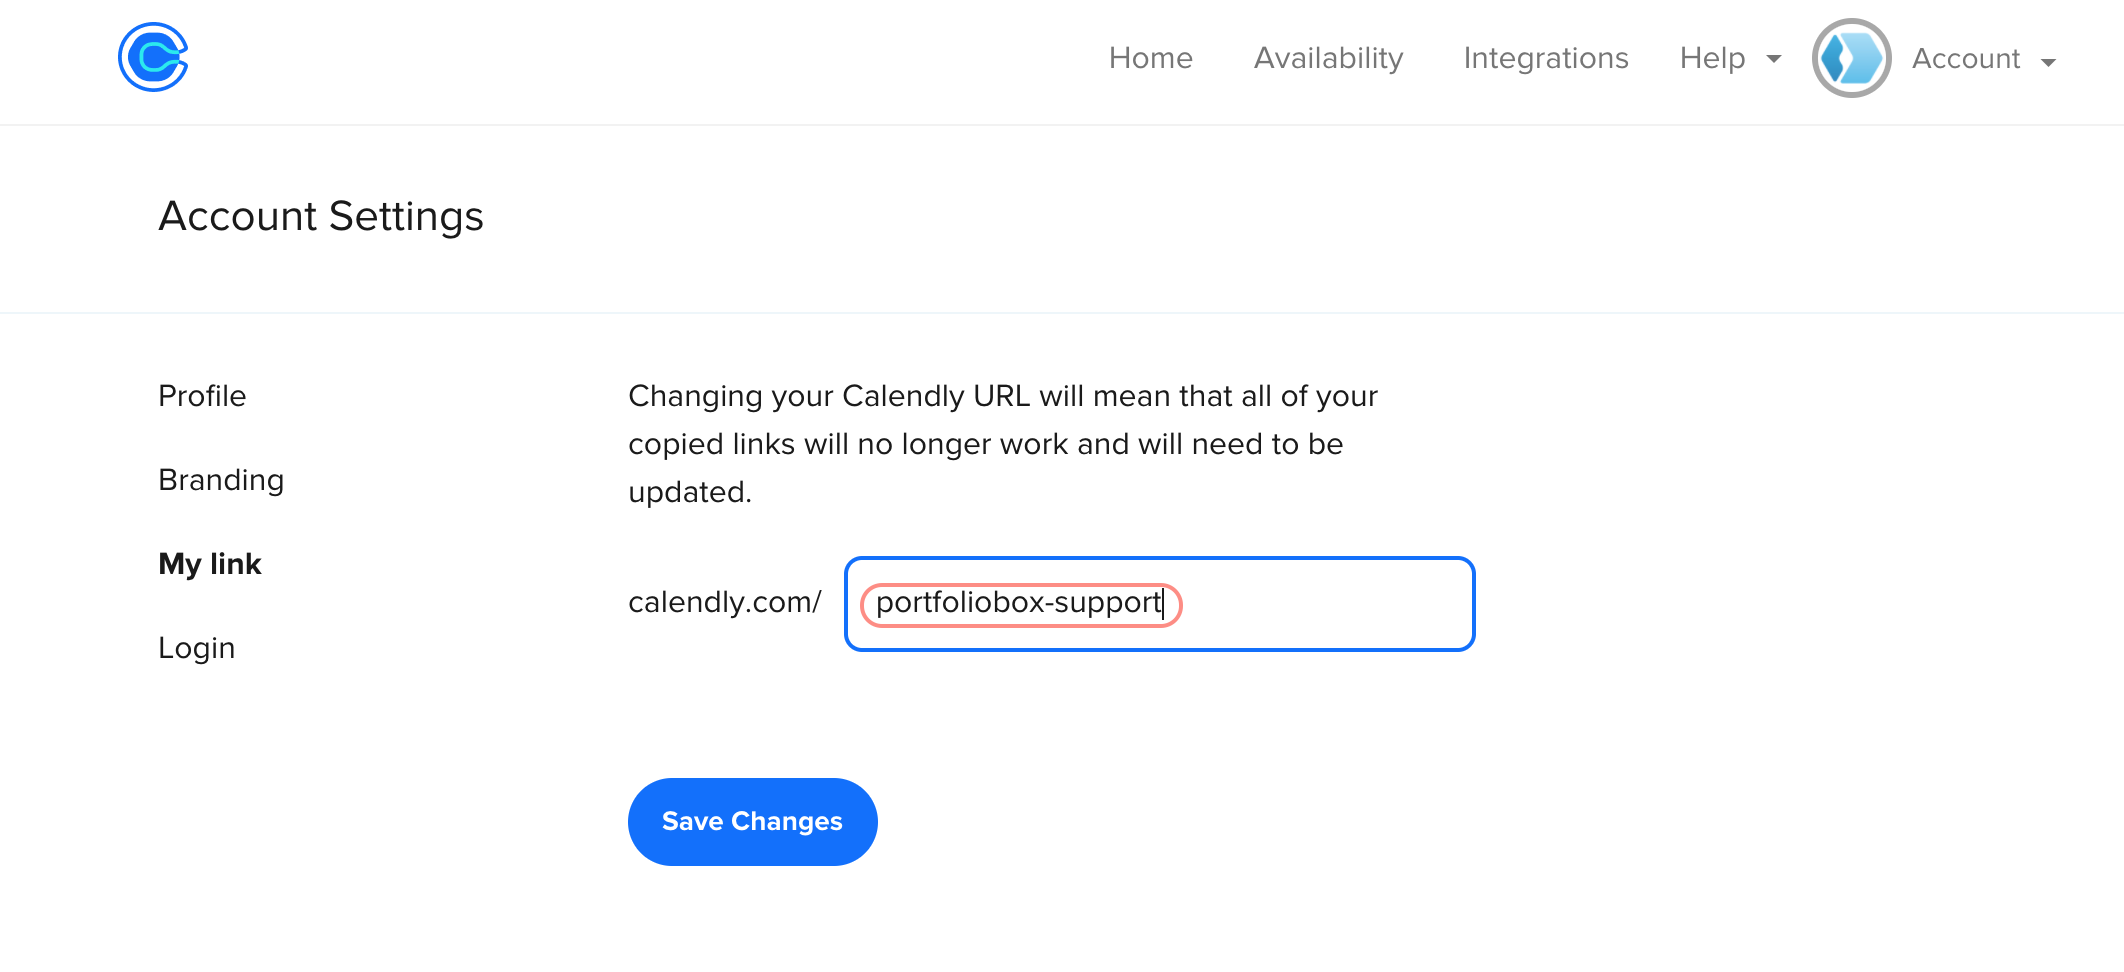 Get the URL from Calendly